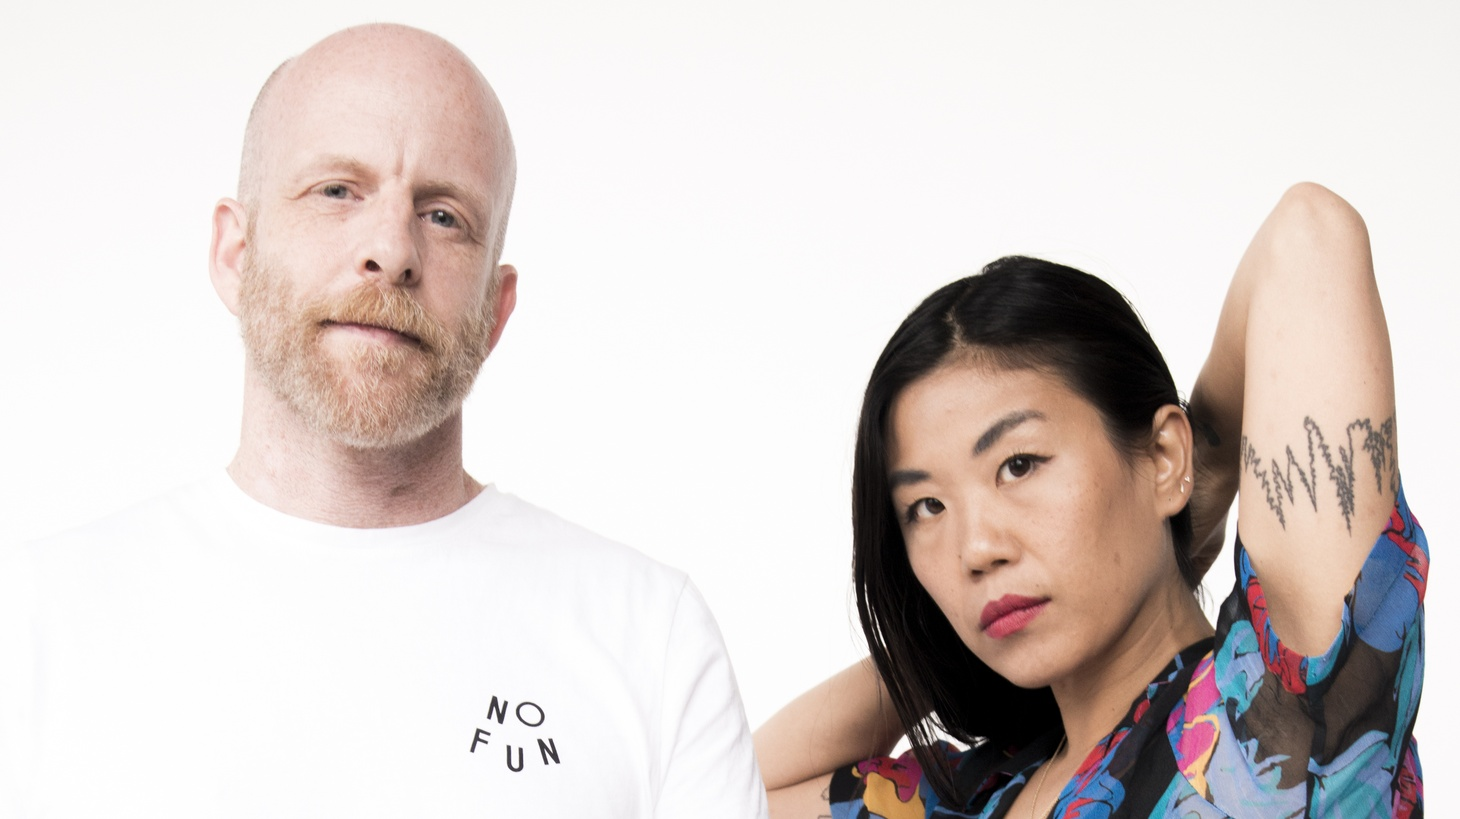 """Tasty dance duo The Juan Maclean are back with a new compilation featuring work that you might have missed. They gathered up 12-inch singles released over the past 6 years, and we get moving with """"Get Down (With My Love)."""